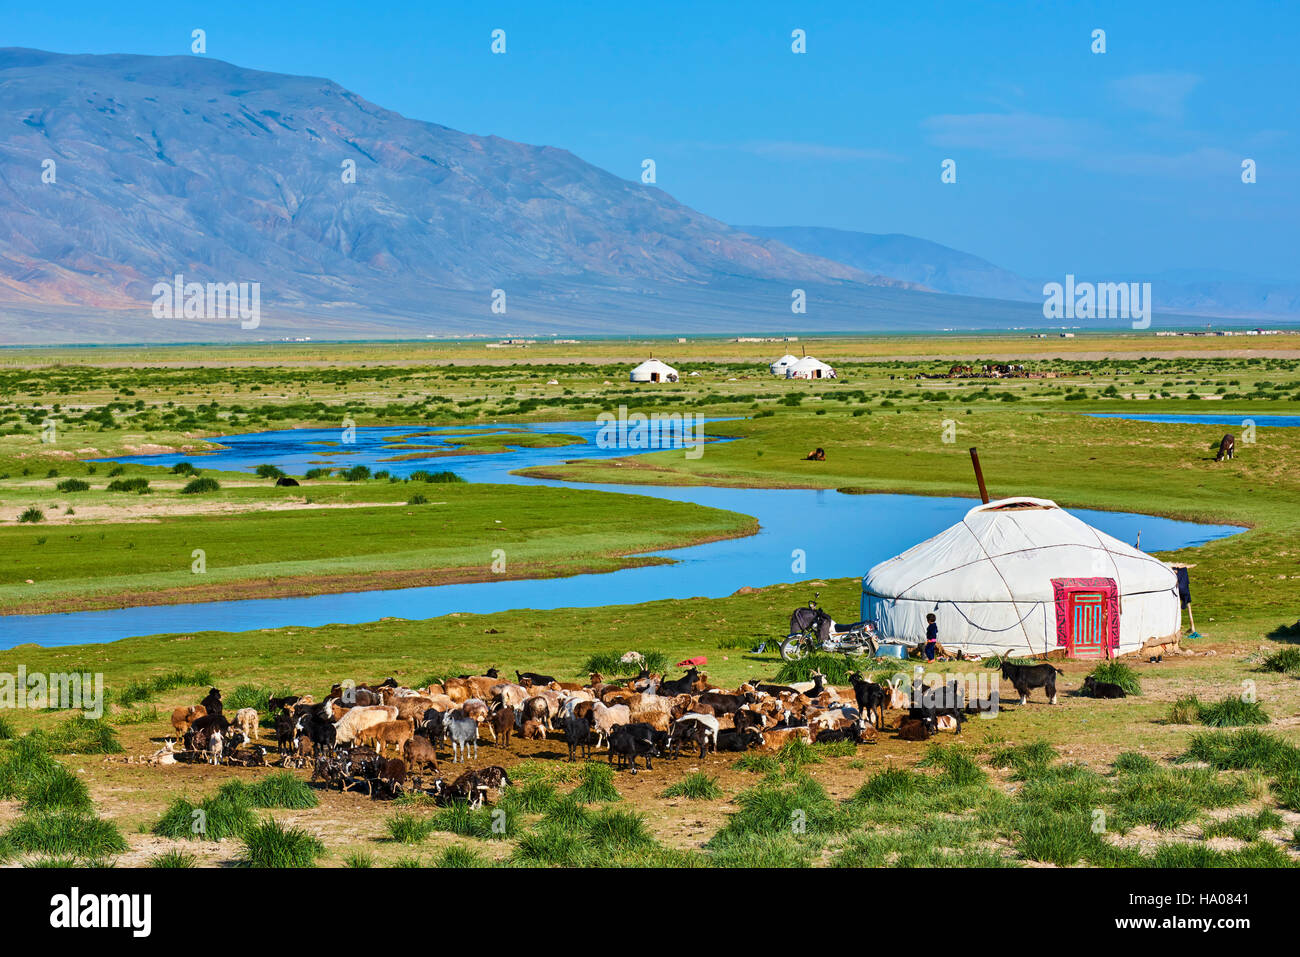 Mongolia, Bayan-Ulgii province, western Mongolia, nomad camp of Kazakh people in the steppe - Stock Image